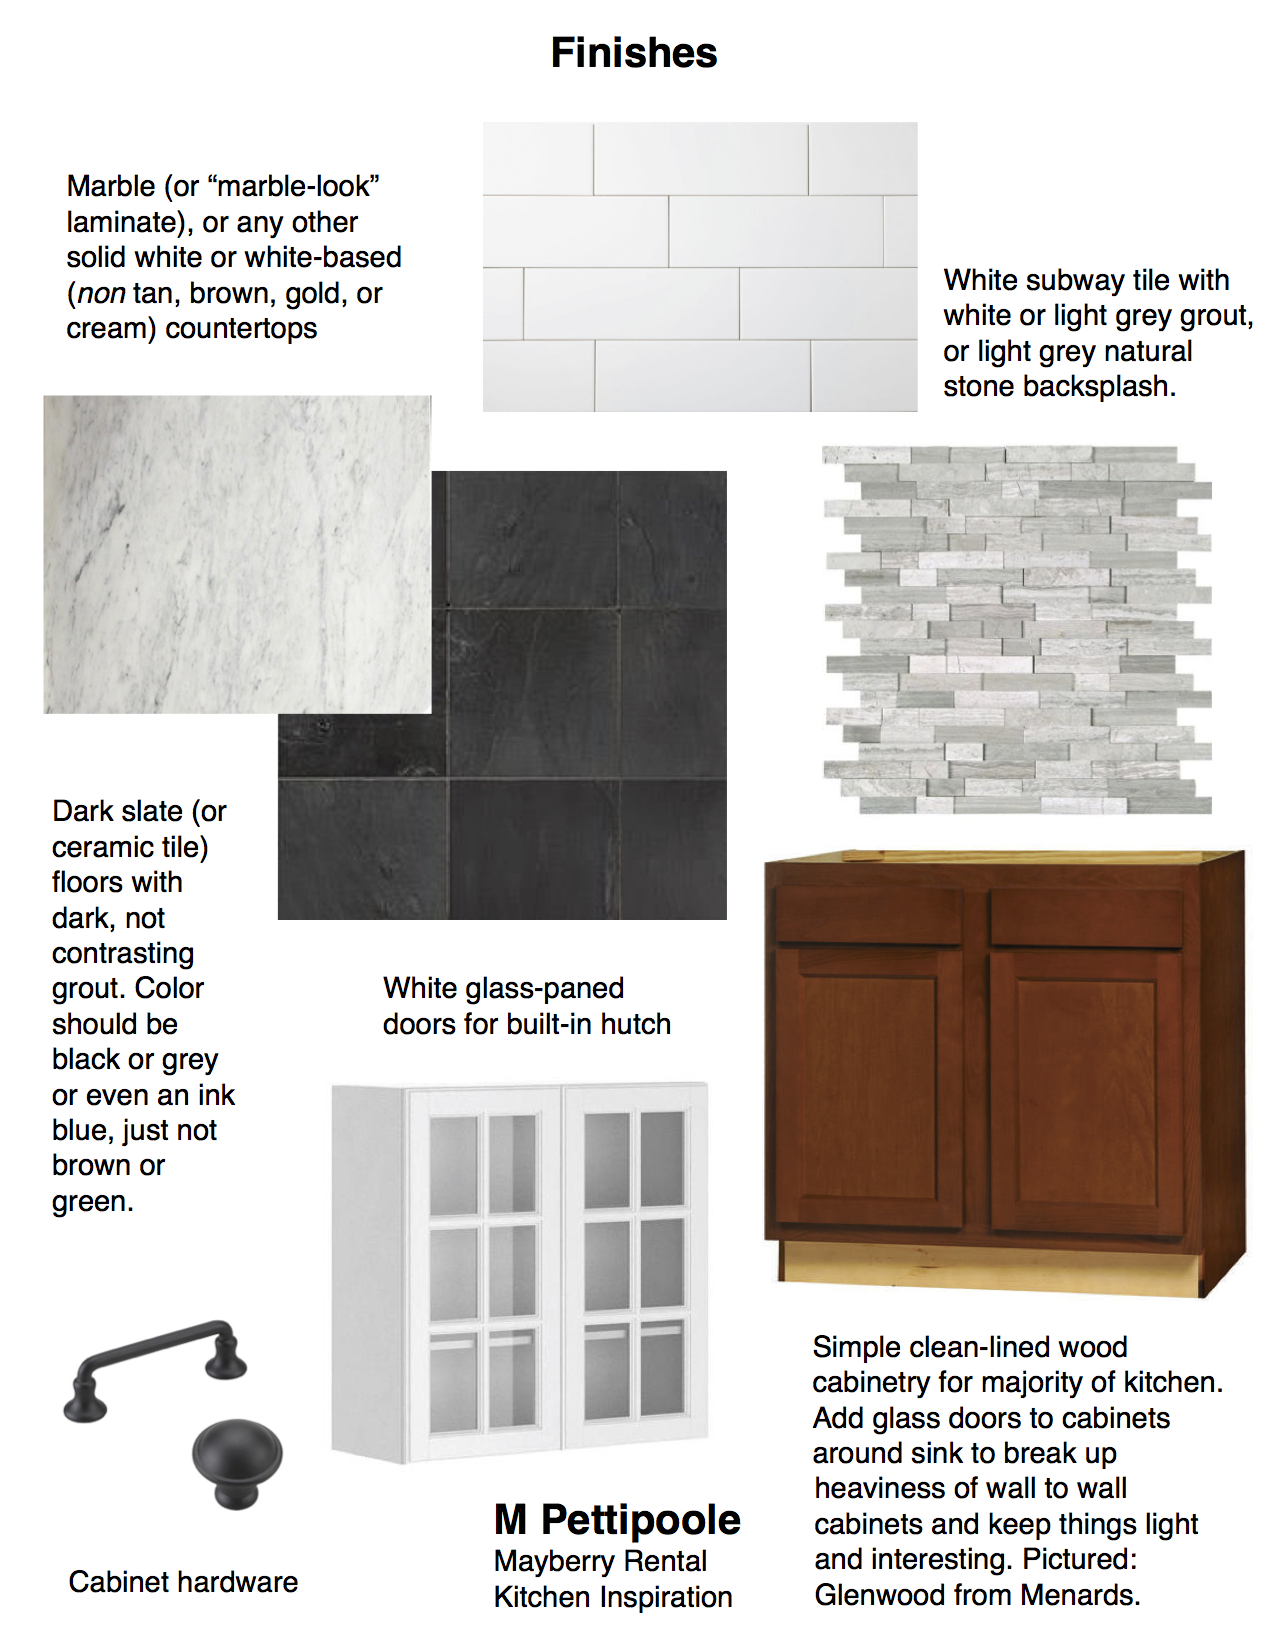 M Pettipoole – Mayberry Rental Kitchen Finishes and Fixtures Mood Board